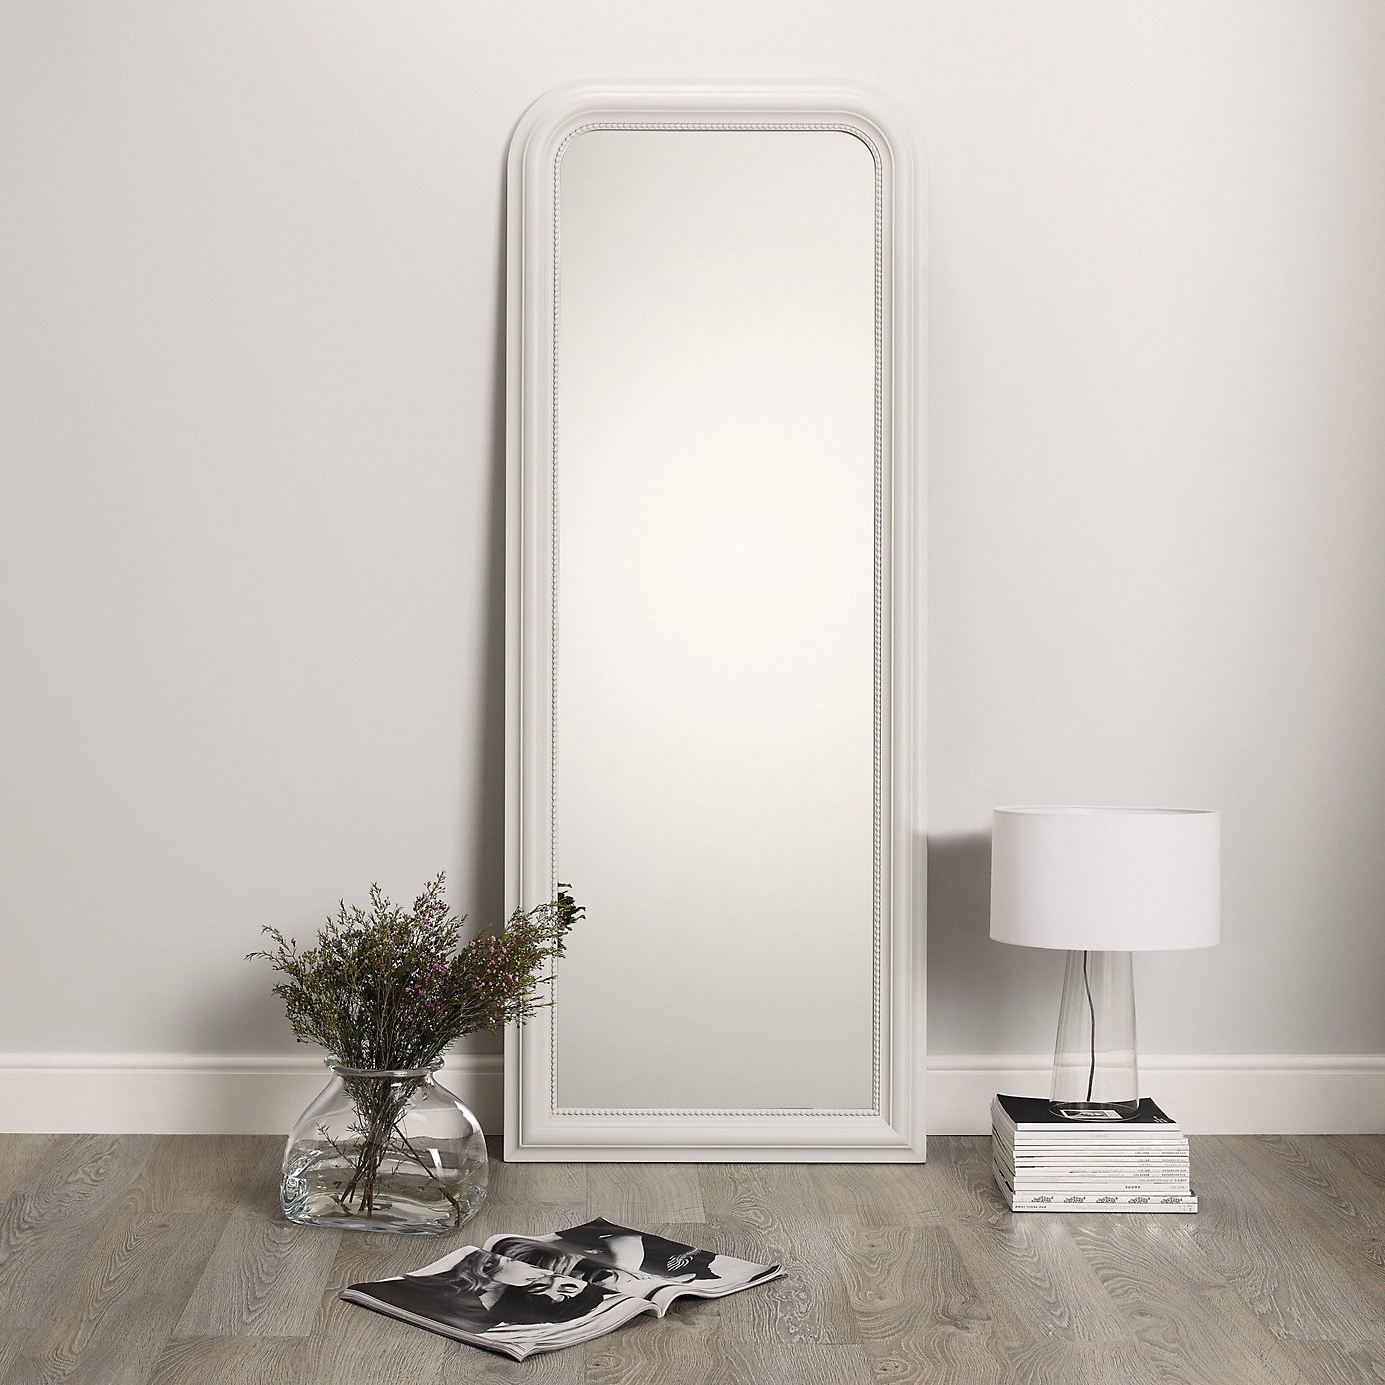 Full Length Decorative Wall Mirrors Strong Wooden Material Modern Inside Famous White Full Length Wall Mirrors (View 13 of 20)